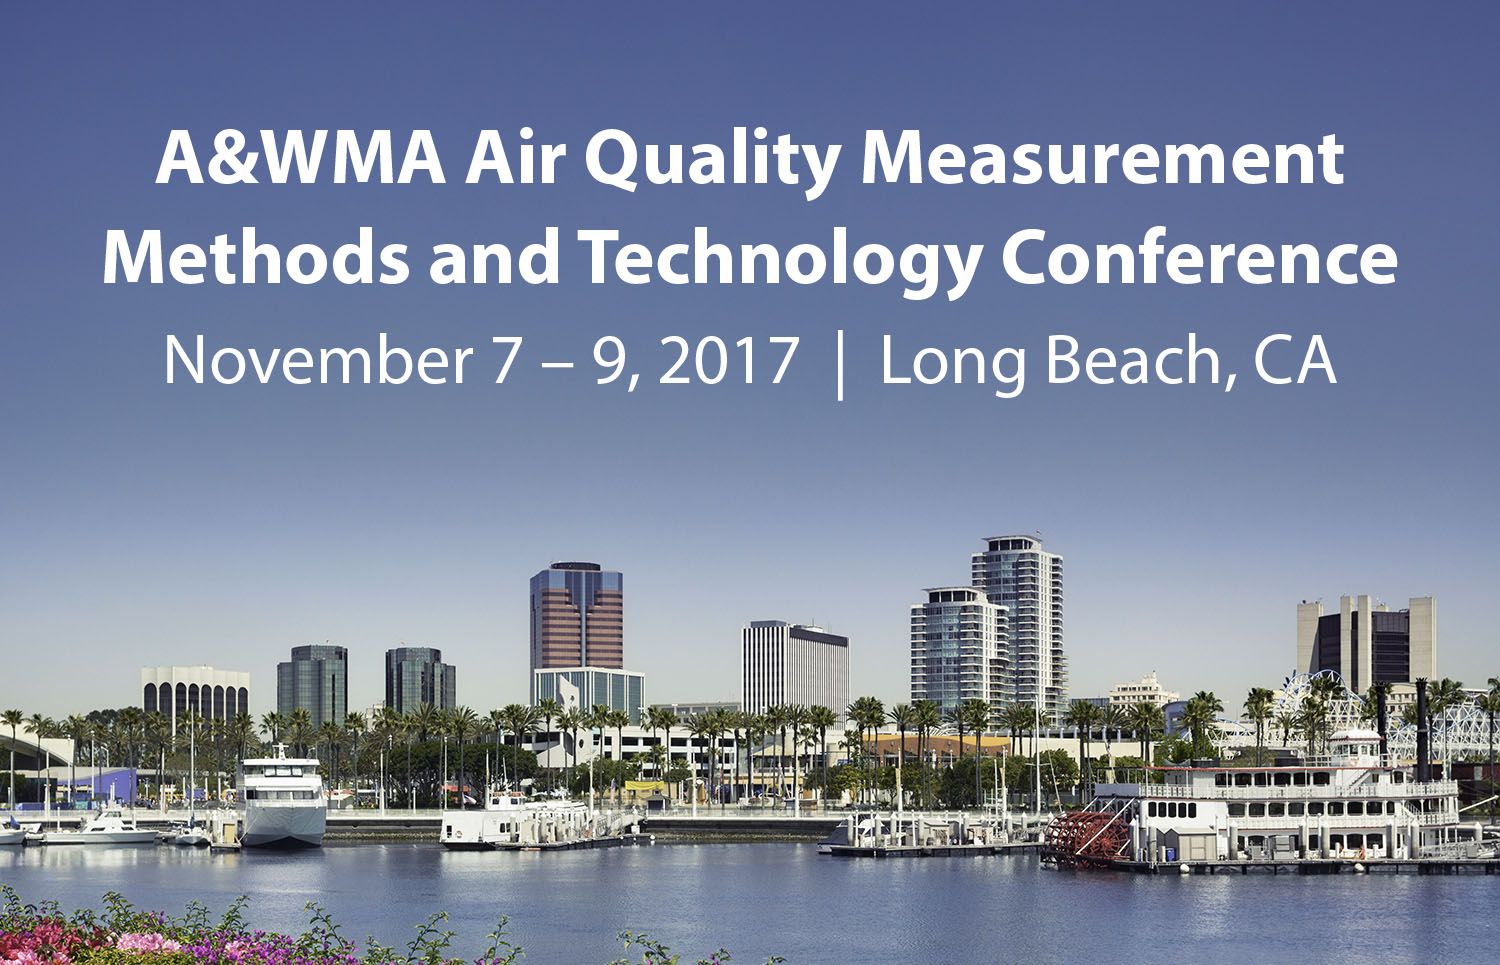 STI at A&WMA's Air Quality Measurement Methods and Technology Conference